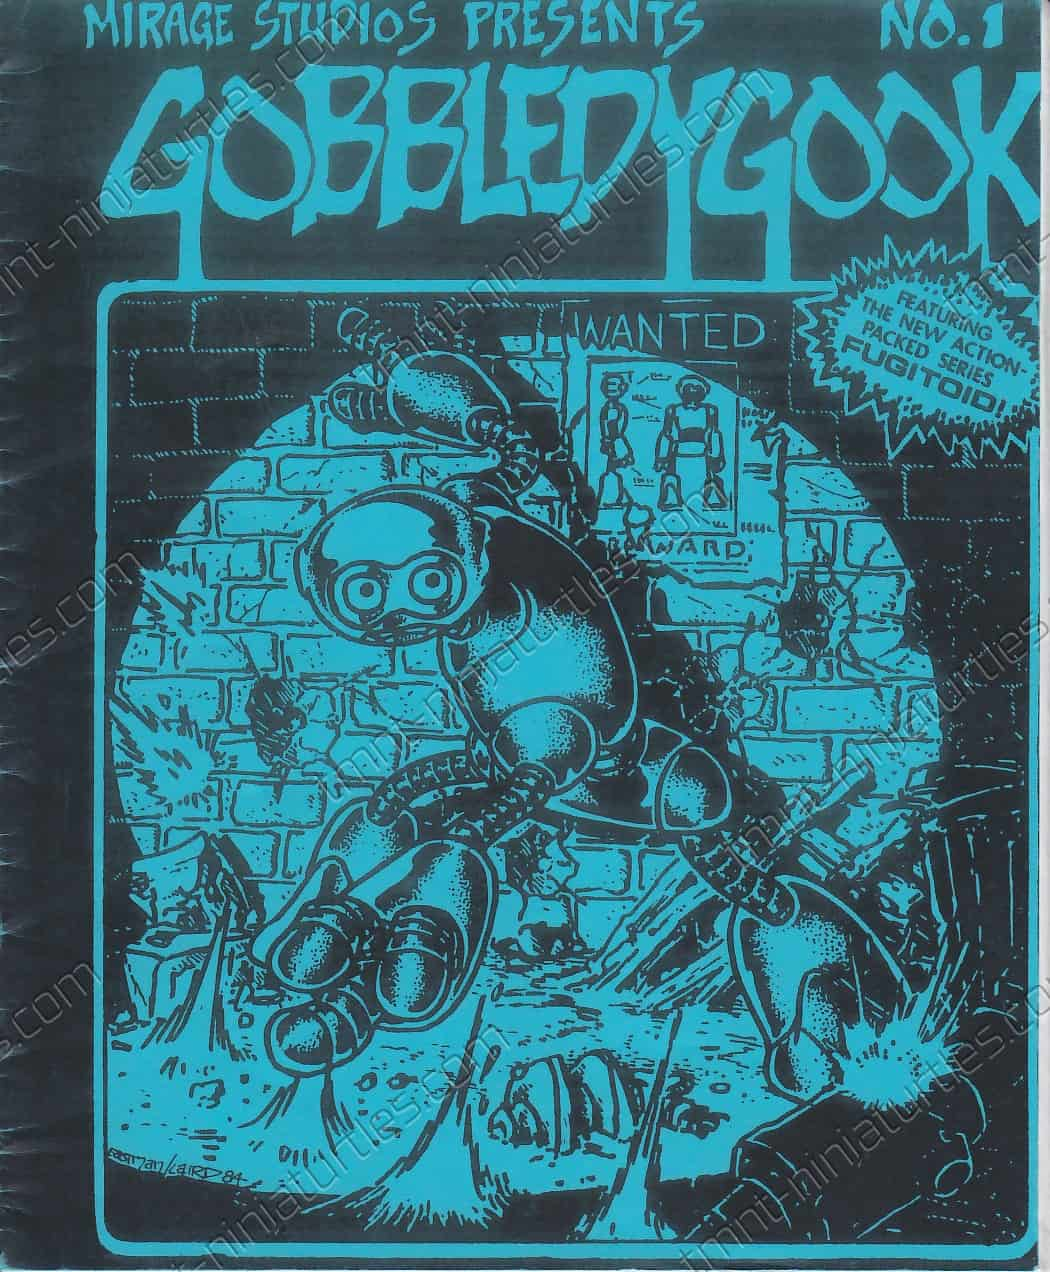 Gobbledygook 01 - COUNTERFEIT BLUE_FRONT COVER (1984)